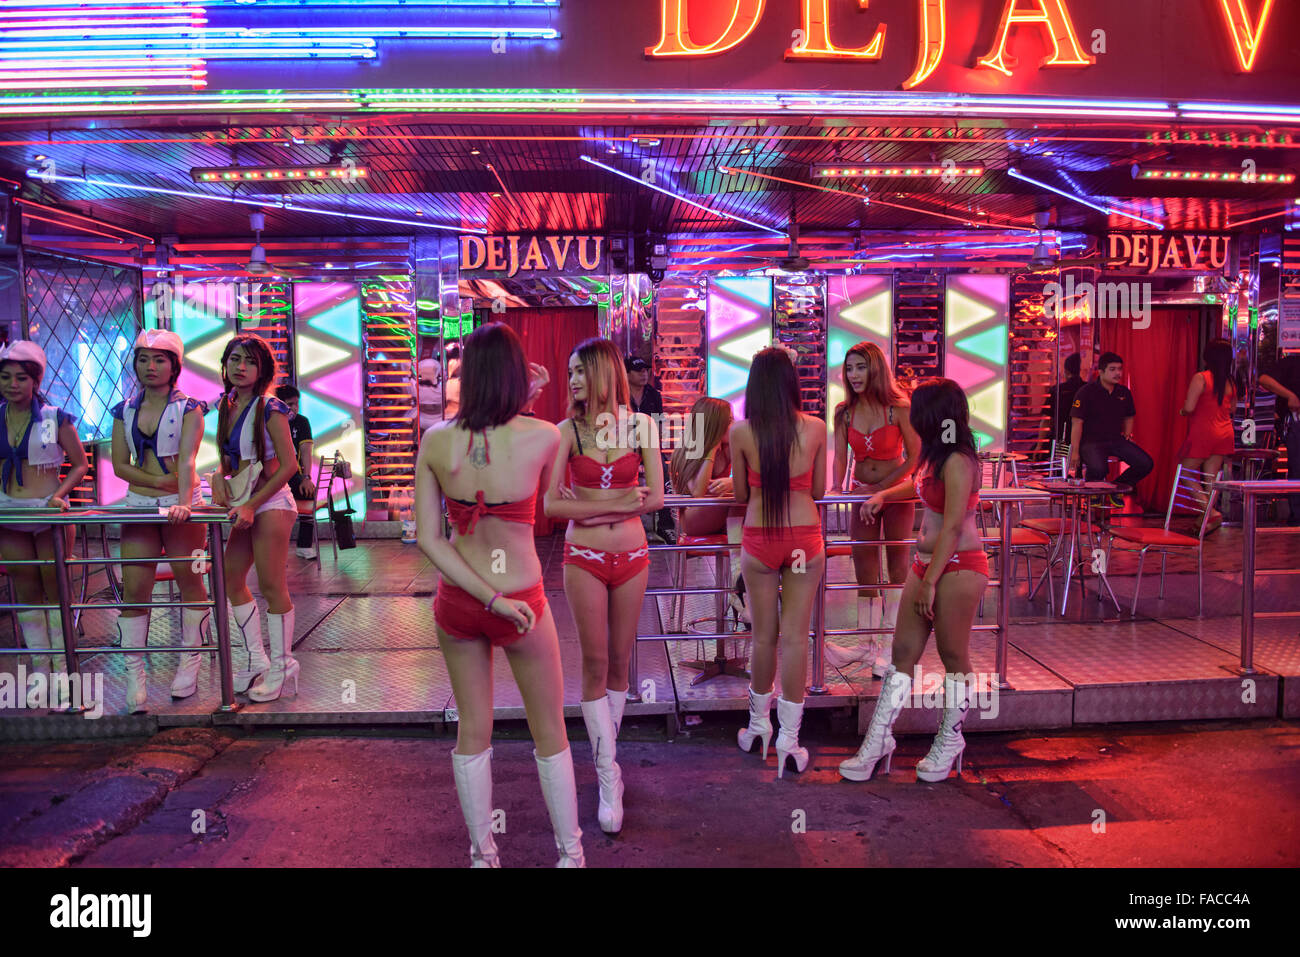 Patpong redlight district whores and gogo bars by wikisexguide - 2 5